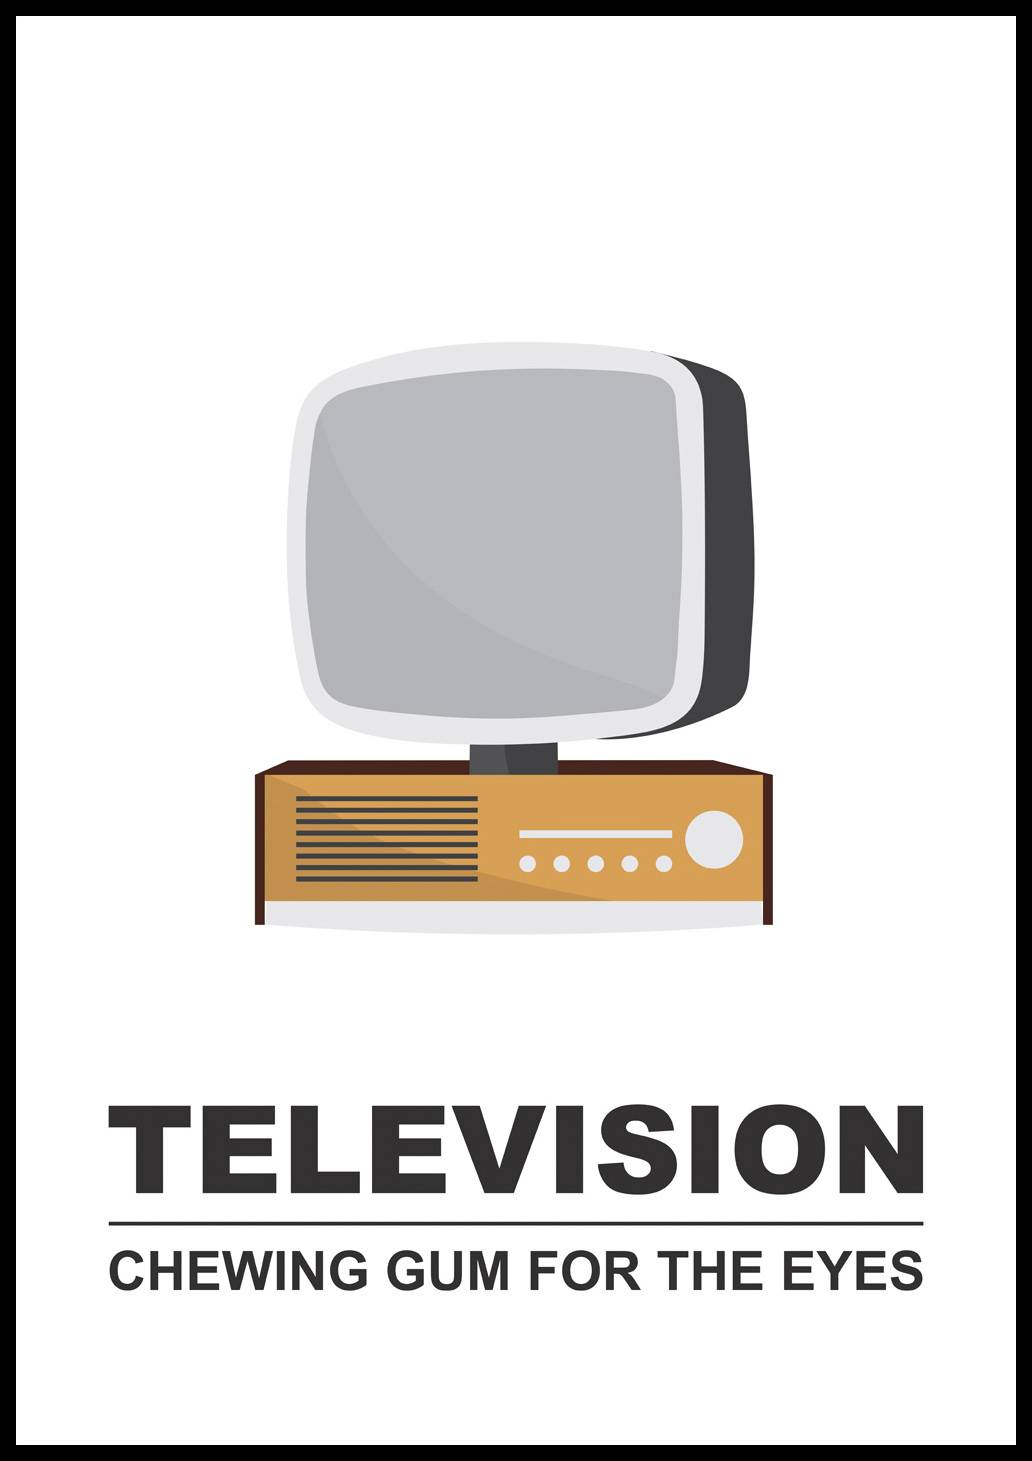 Bildverkstad Television - Chewing gum for the eyes